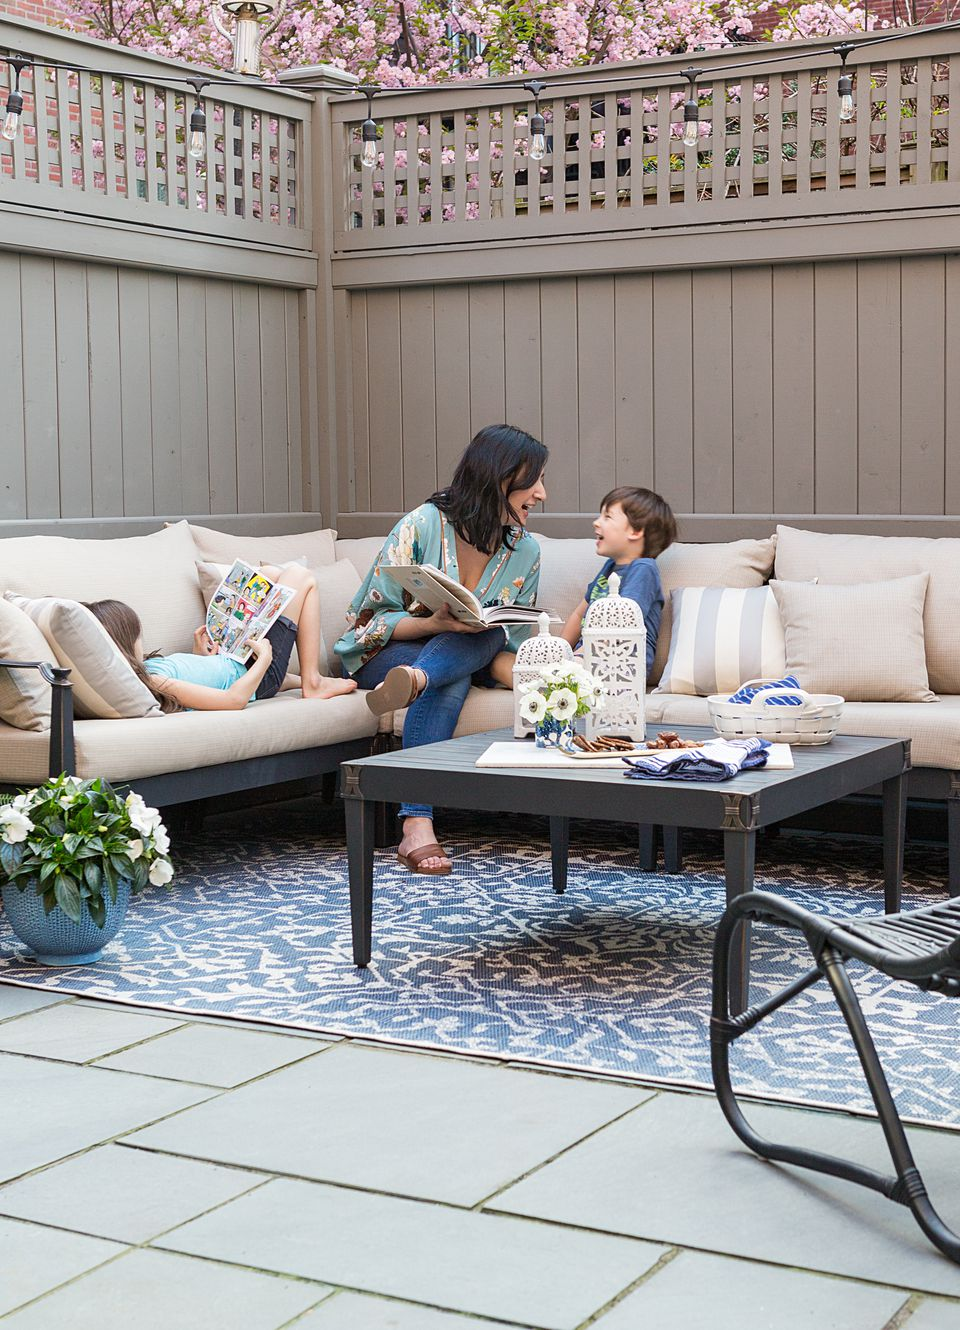 The indoor-outdoor rug on the patio can be hosed down for easy maintenance.